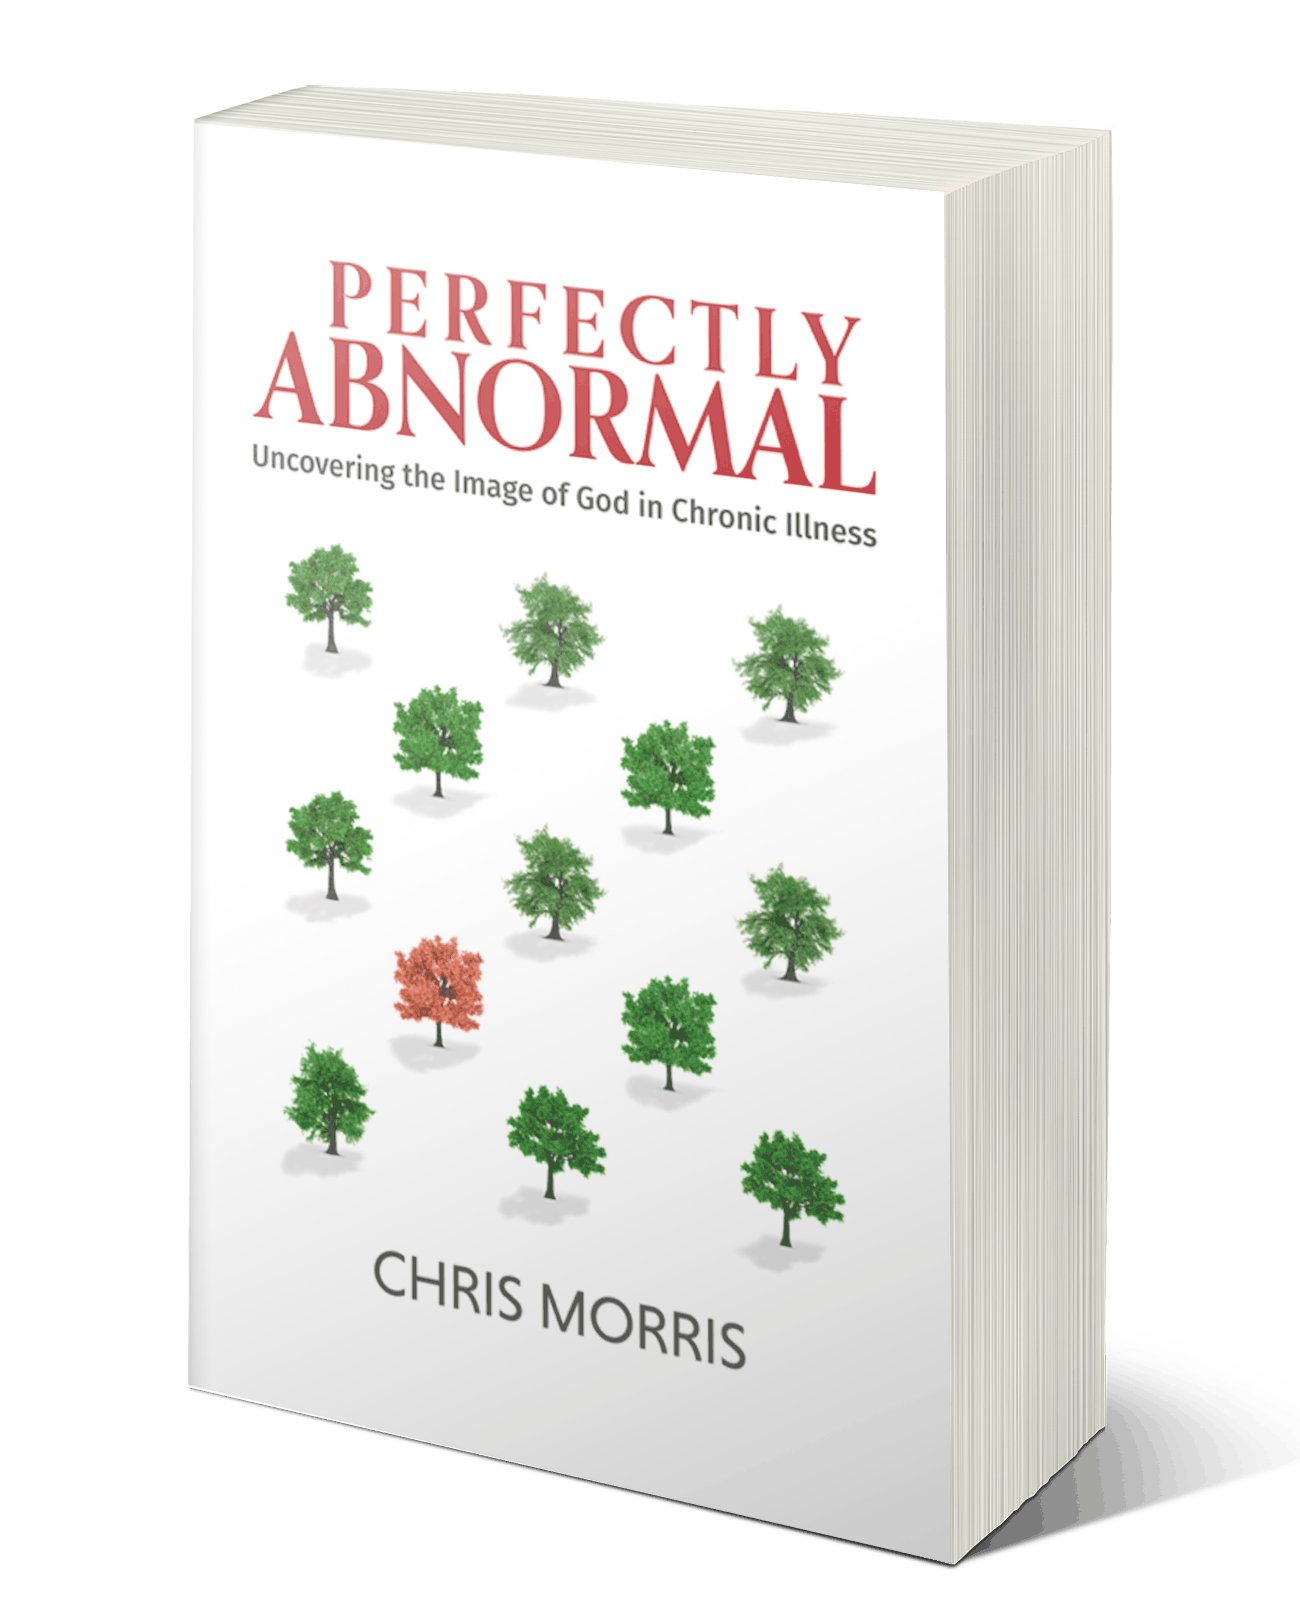 Perfectly Abnormal